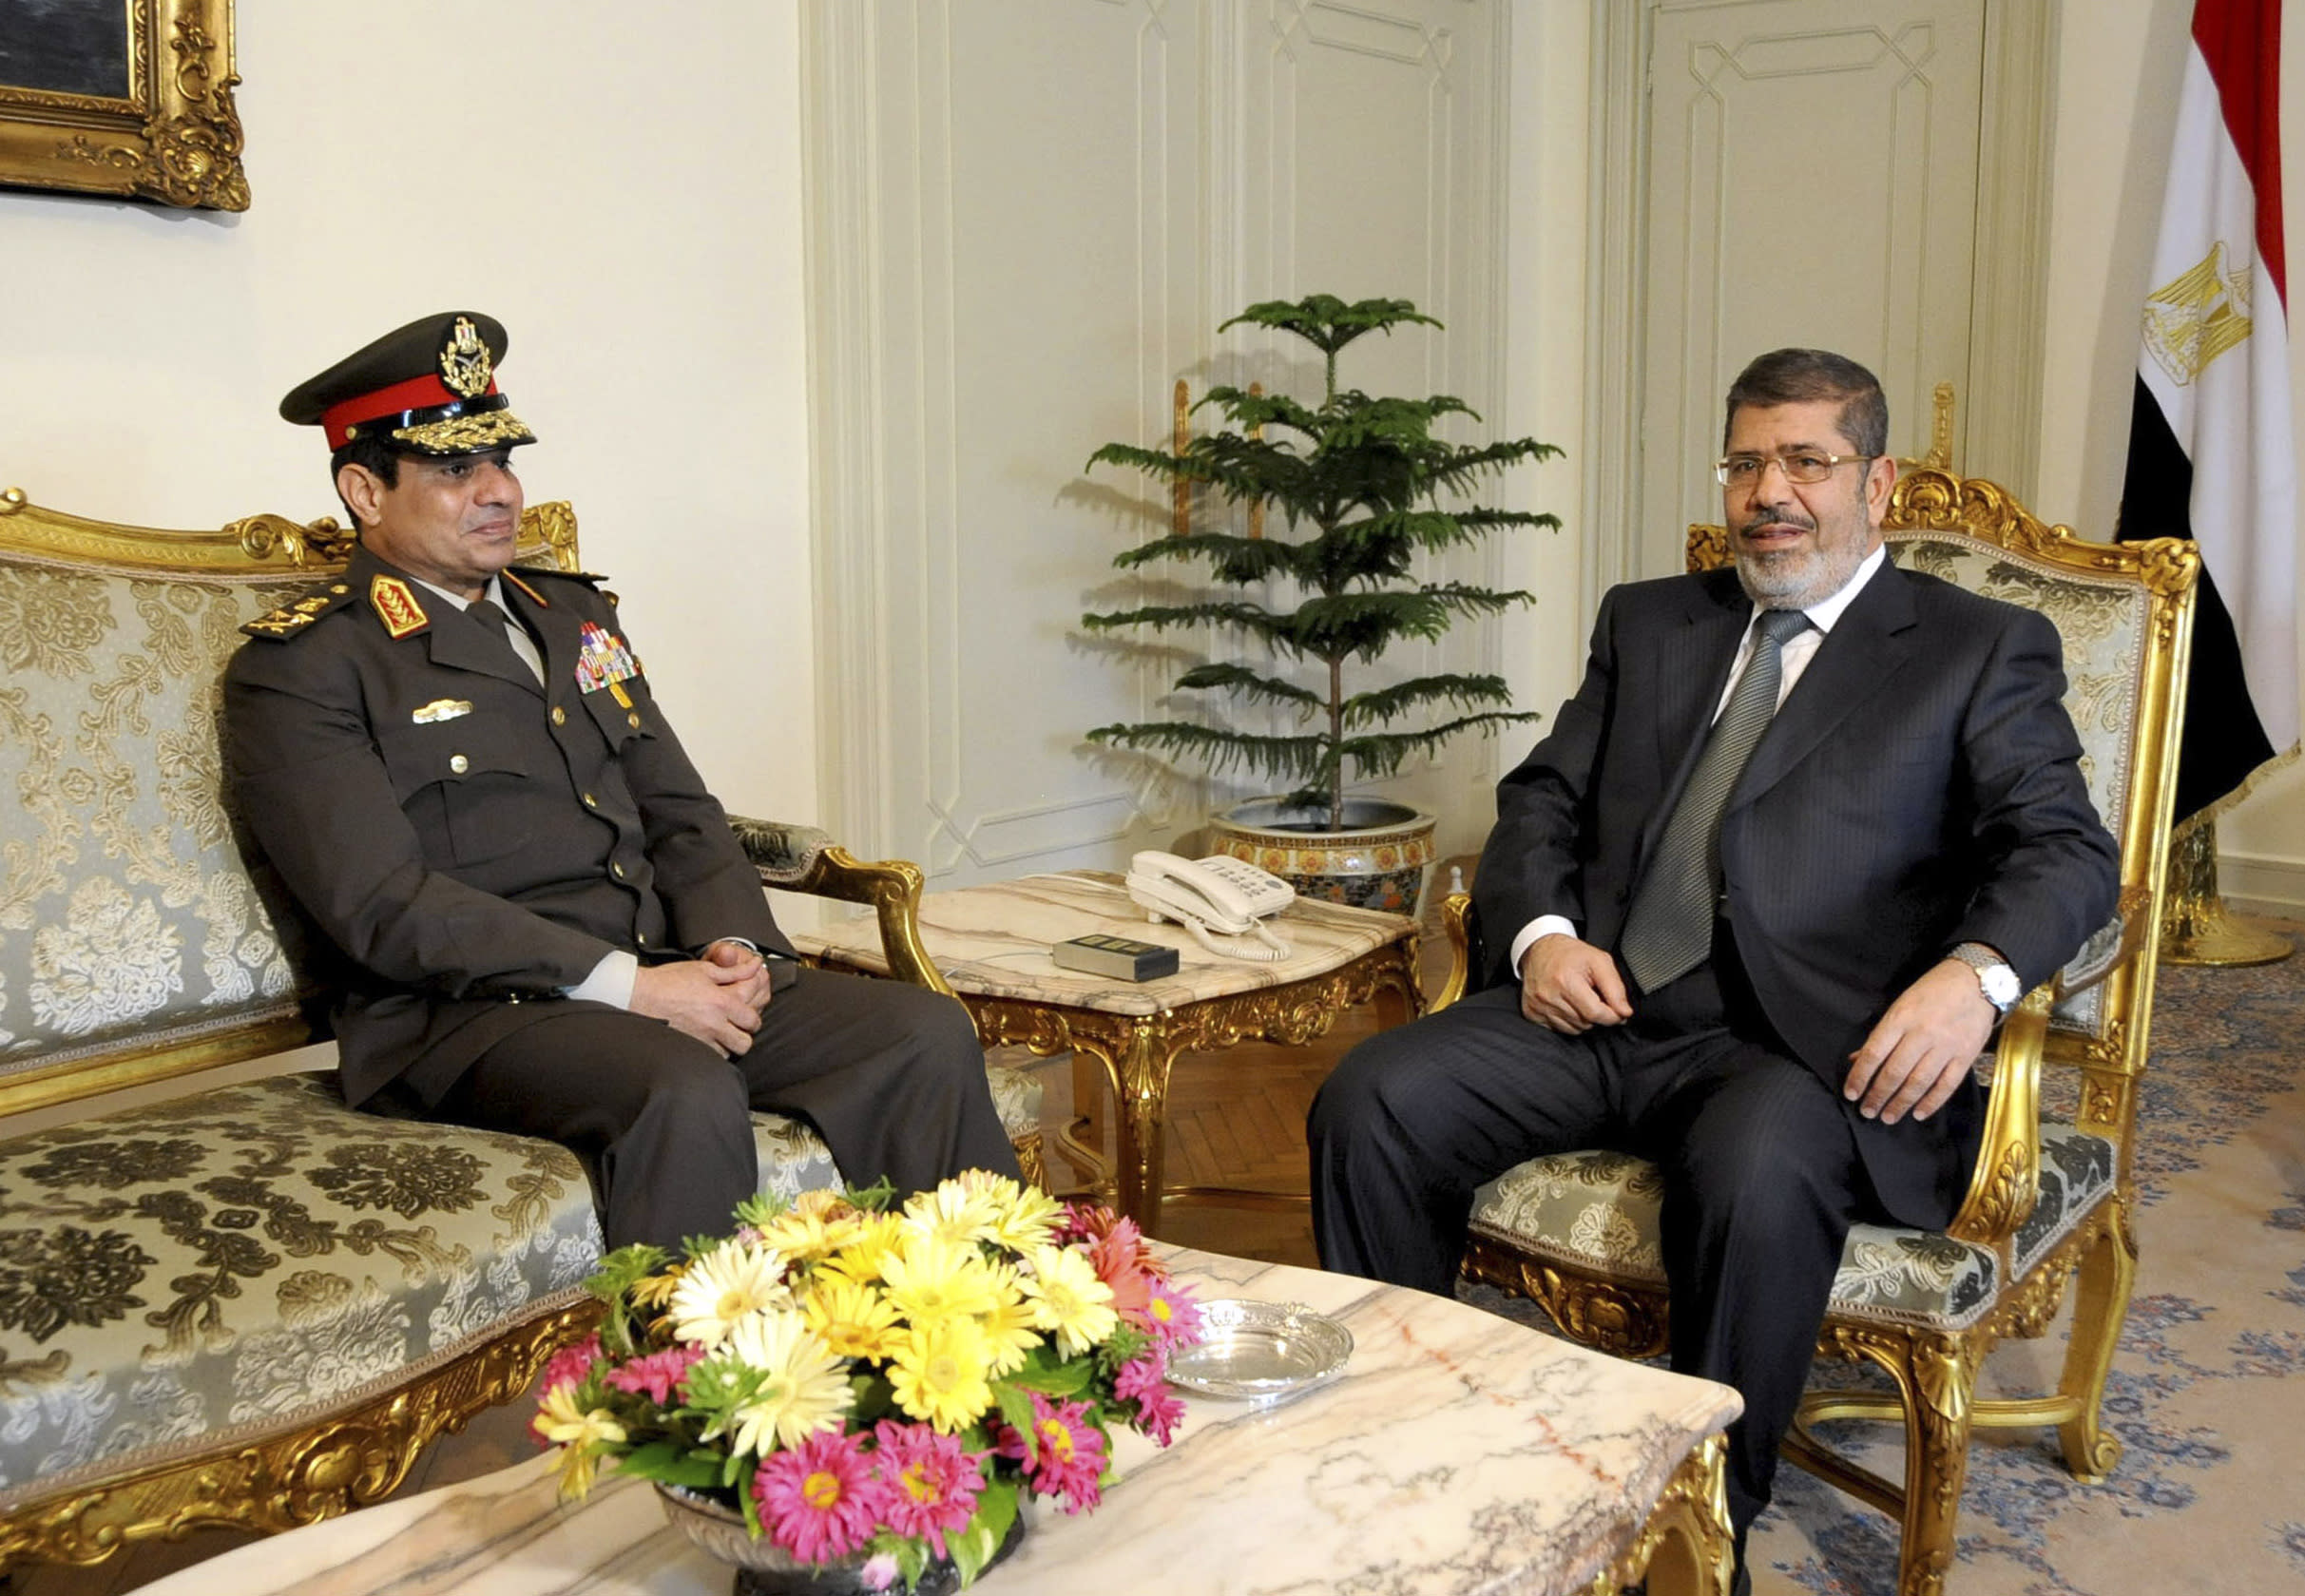 """FILE - In this Thursday Feb, 21, 2013 file photo, released by the Egyptian Presidency, Egyptian Minister of Defense, Lt. Gen. Abdel-Fattah el-Sissi, left, meets with Egyptian President Mohammed Morsi at the presidential headquarters in Cairo, Egypt. El-Sissi has warned that the military is ready to intervene to stop the nation from entering a """"dark tunnel"""" of internal conflict. (AP Photo/Mohammed Abd El Moaty, Egyptian Presidency, File)"""